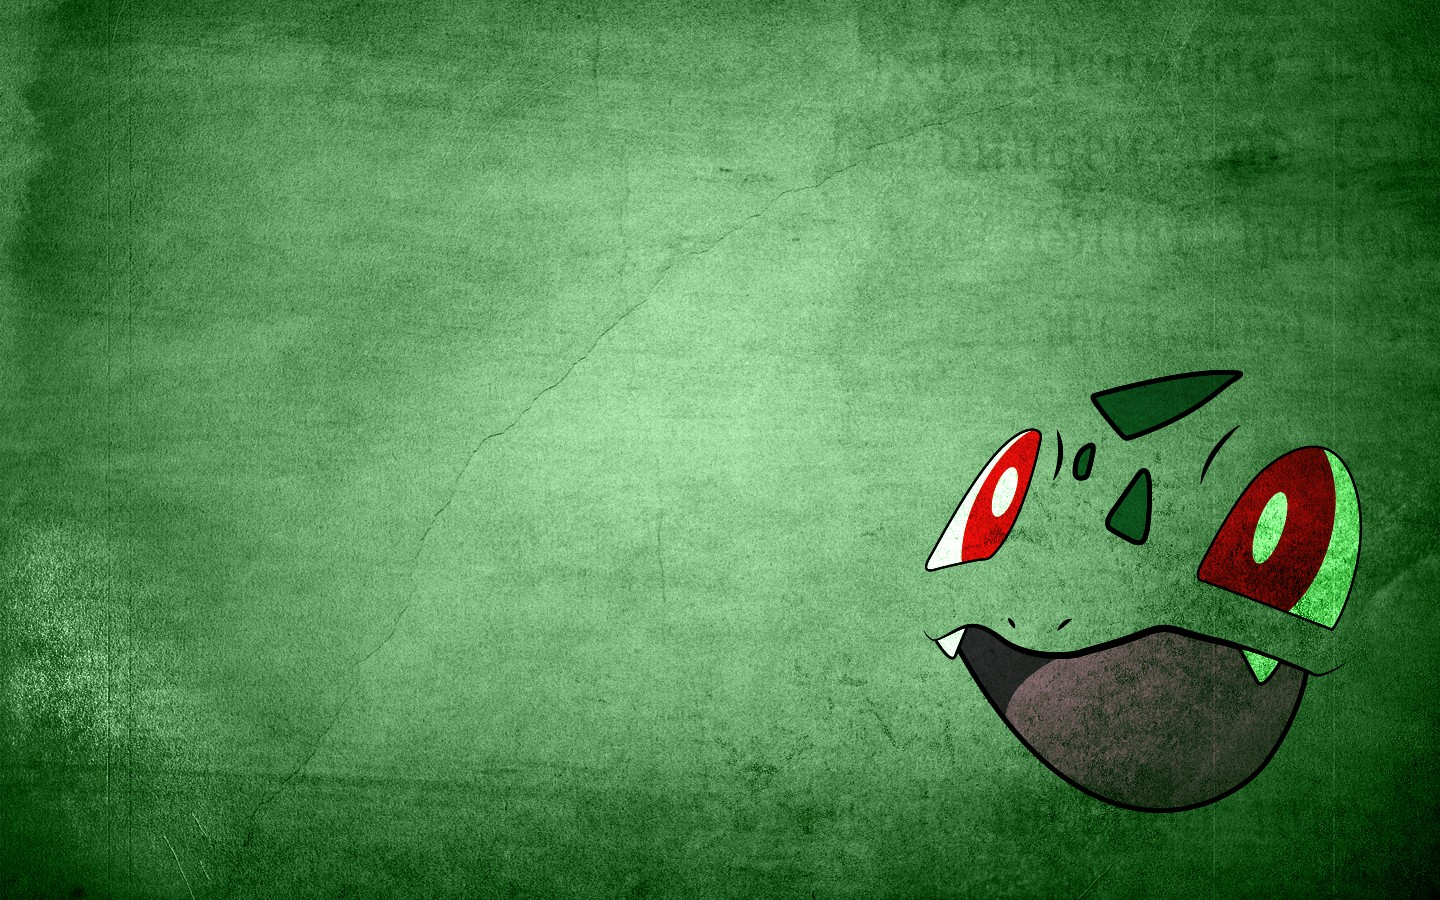 4577914 Pokmon simple background minimalism Bulbasaur 1440x900